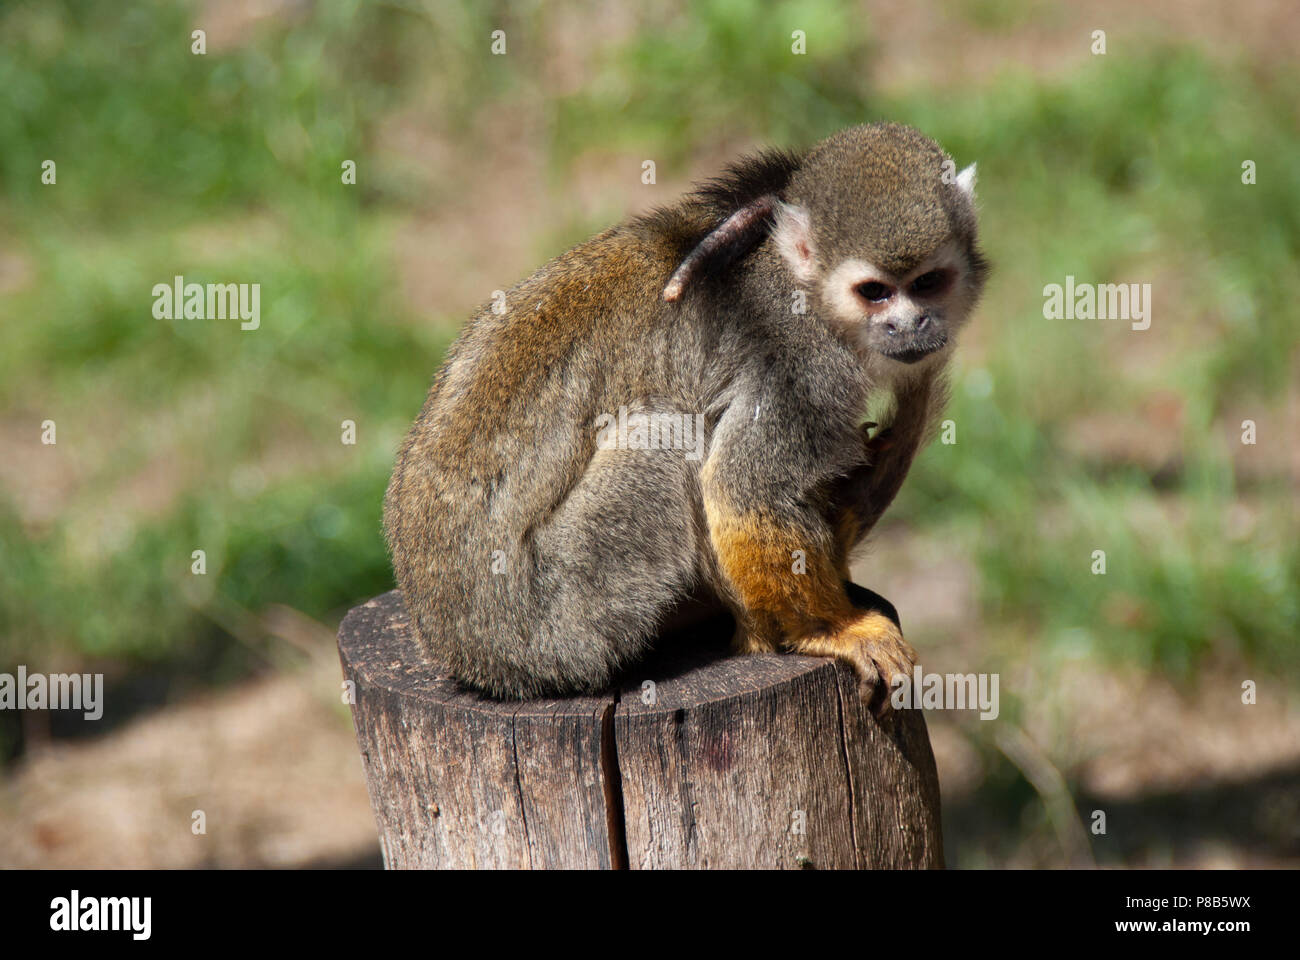 Little cute Ape is watching me - Stock Image